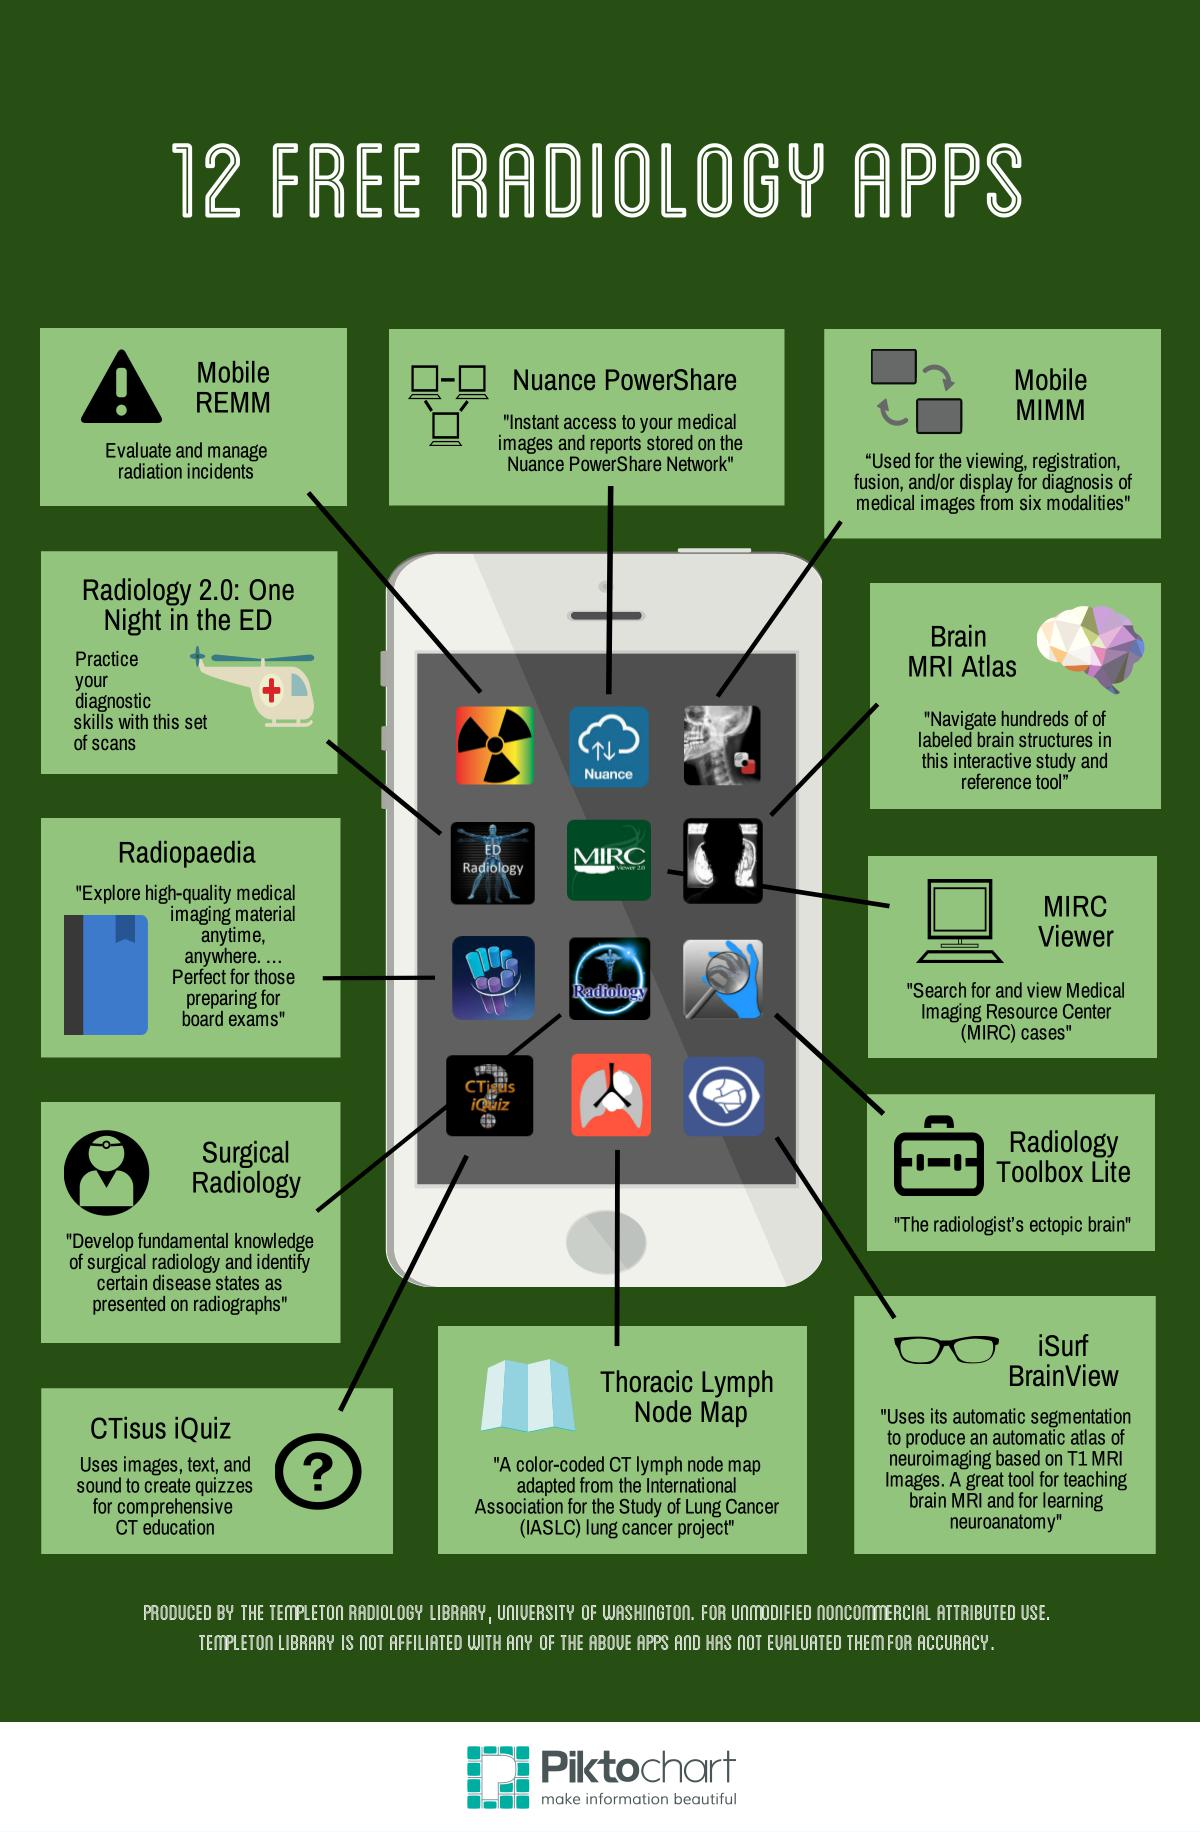 12 free radiology apps guide